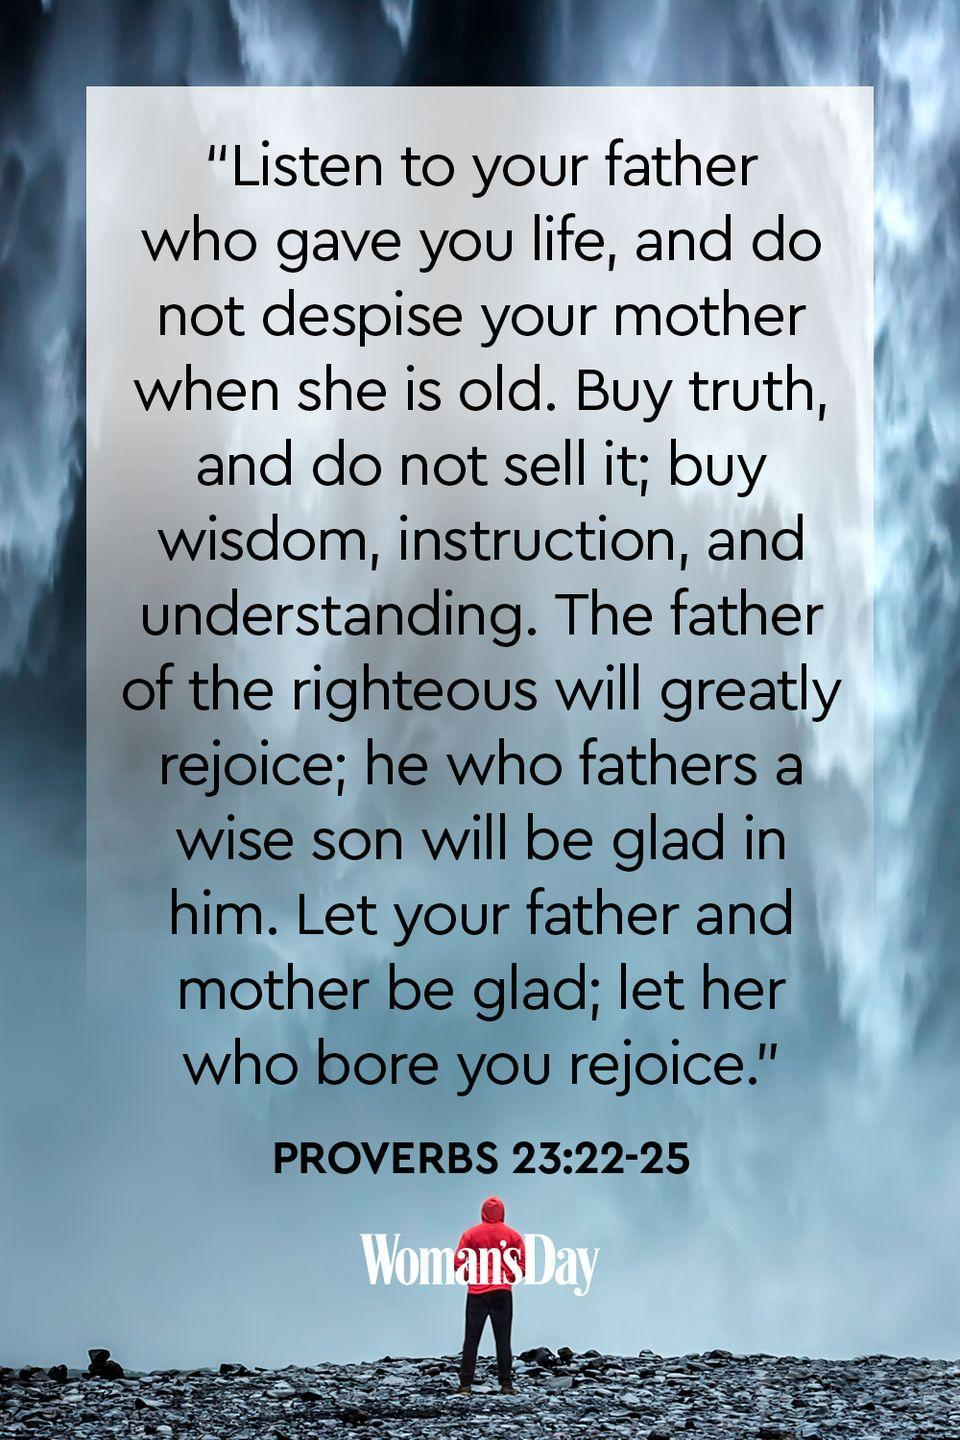 "<p>""Listen to your father who gave you life, and do not despise your mother when she is old. Buy truth, and do not sell it; buy wisdom, instruction, and understanding. The father of the righteous will greatly rejoice; he who fathers a wise son will be glad in him. Let your father and mother be glad; let her who bore you rejoice.""</p><p><strong>The Good News: </strong>Listen to your mother, for she gave you life. Make her proud of the person you are becoming and treat her well.</p>"